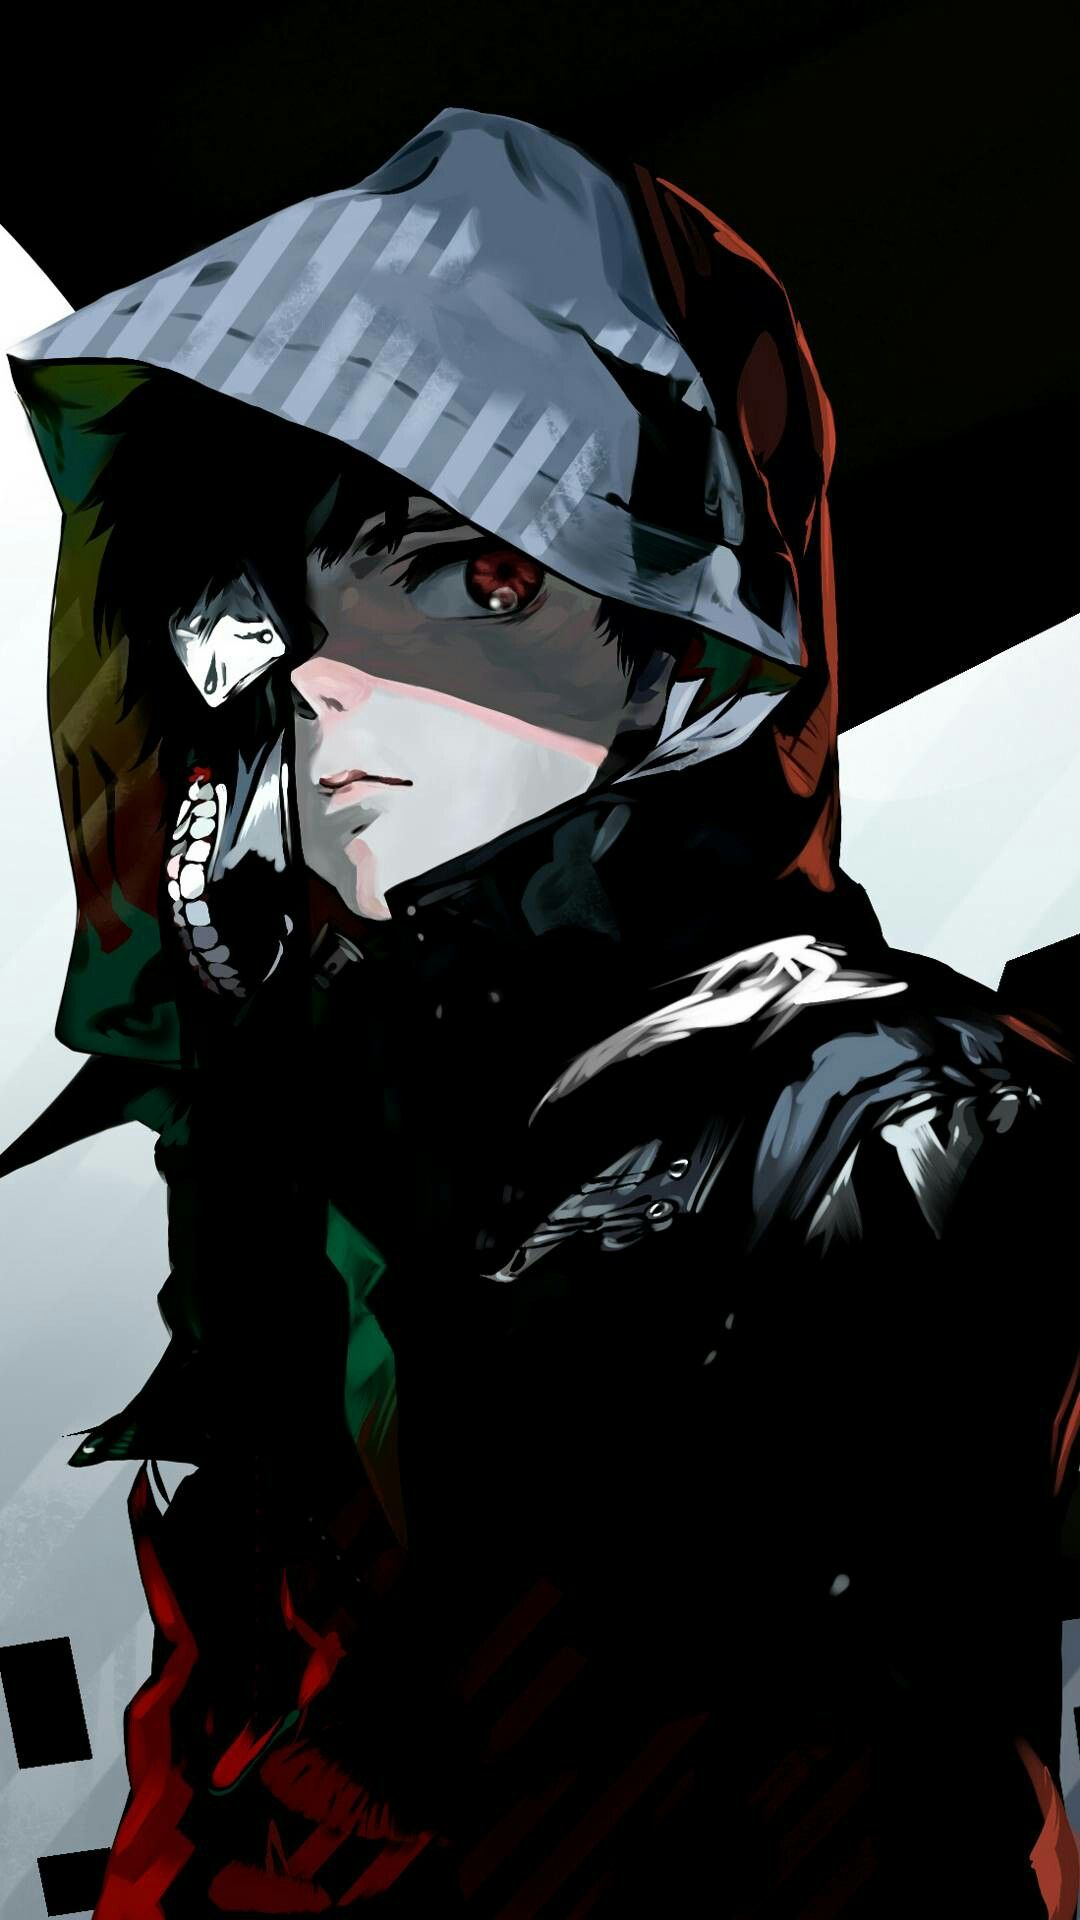 Pin by Anime and toons on Anime Mix Tokyo ghoul